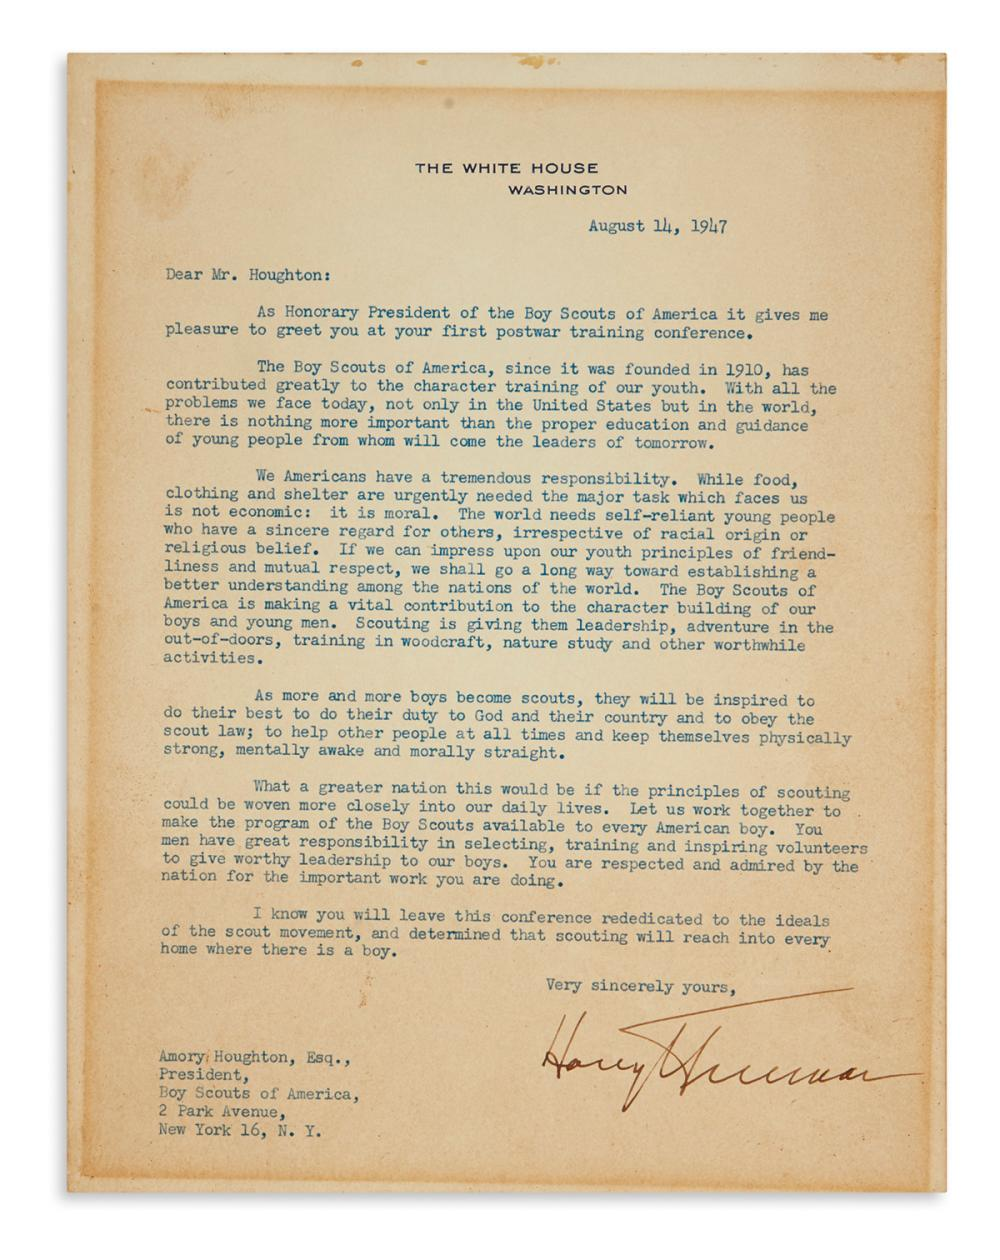 TRUMAN, HARRY S. Typed Letter Signed, as President, to President of the Boy Scouts of America Amory Houghton,